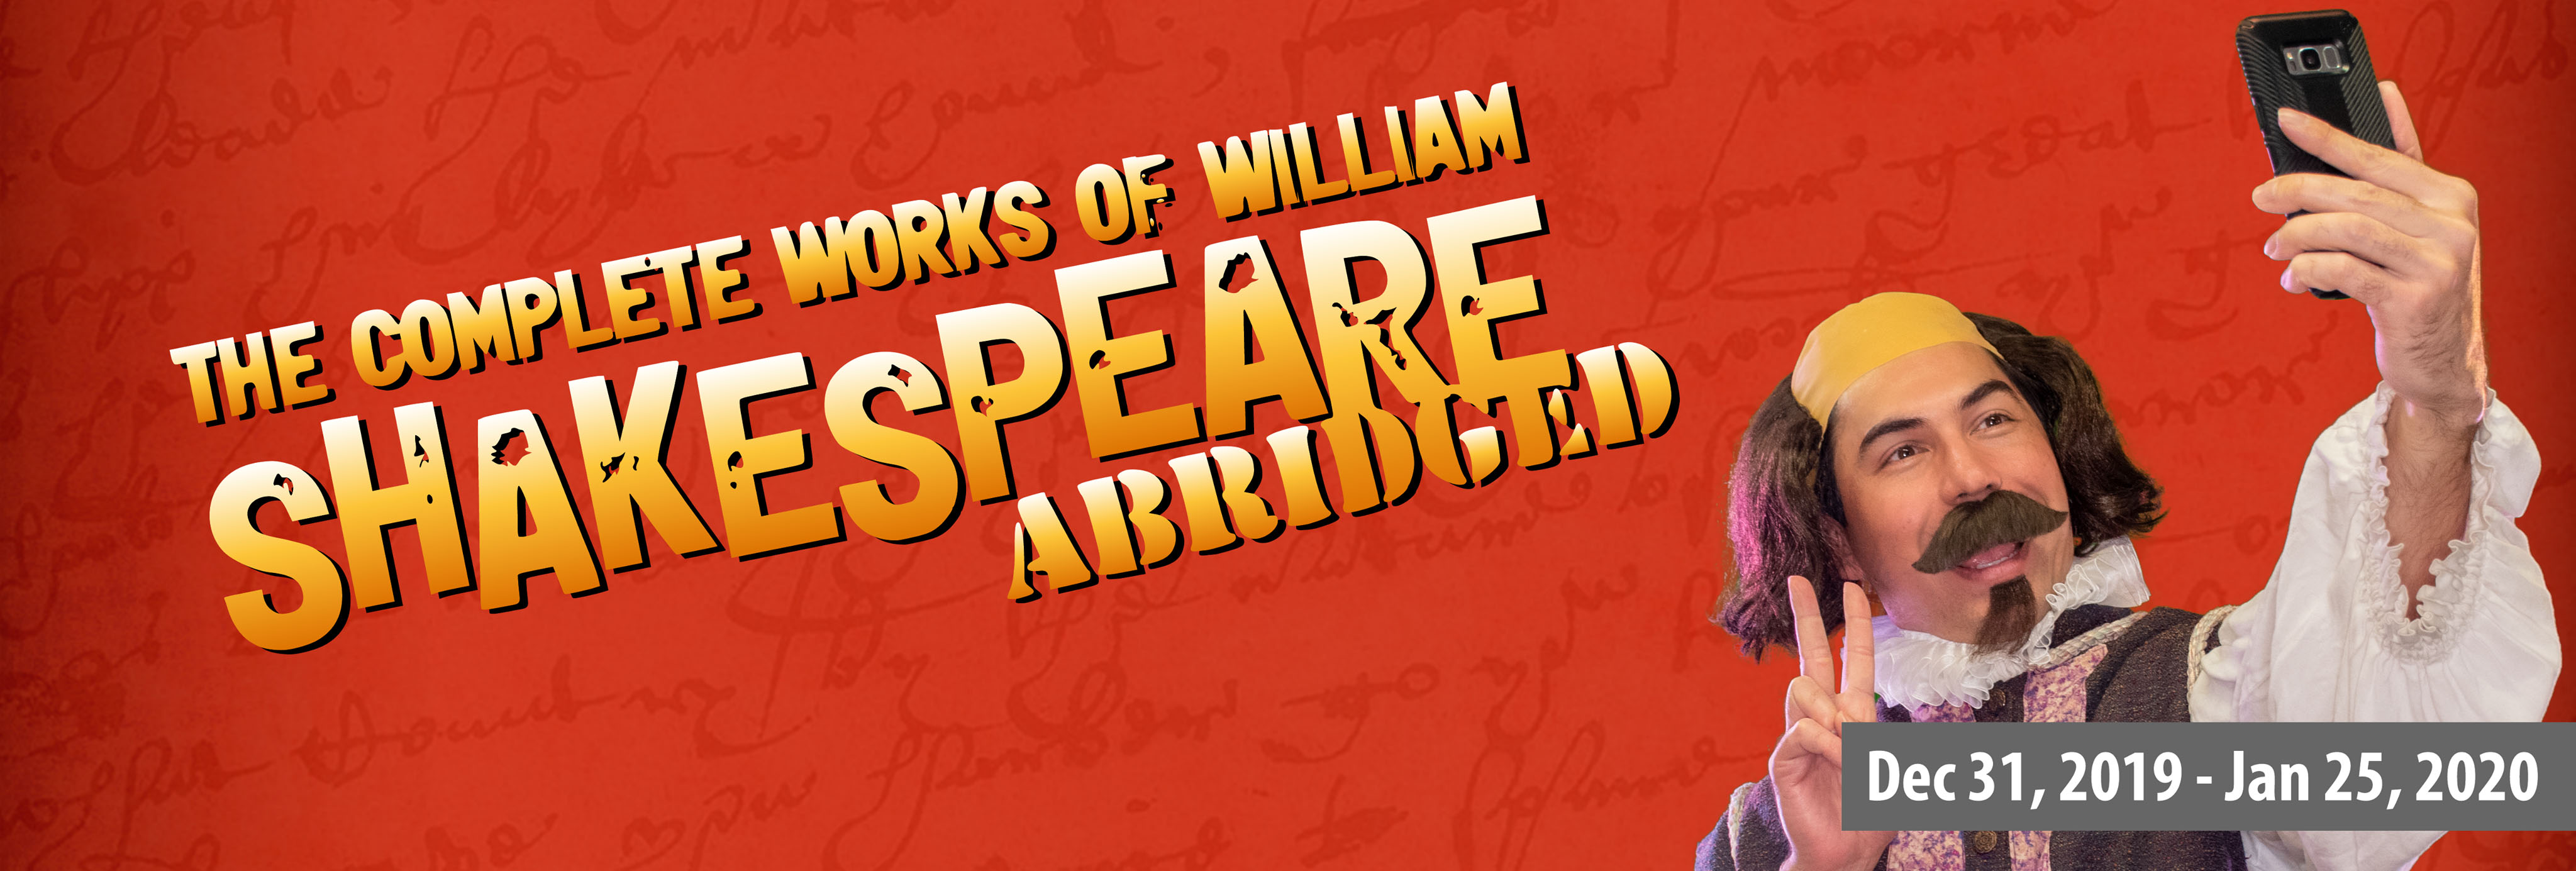 Complete Works of William Shakespeare Abridged